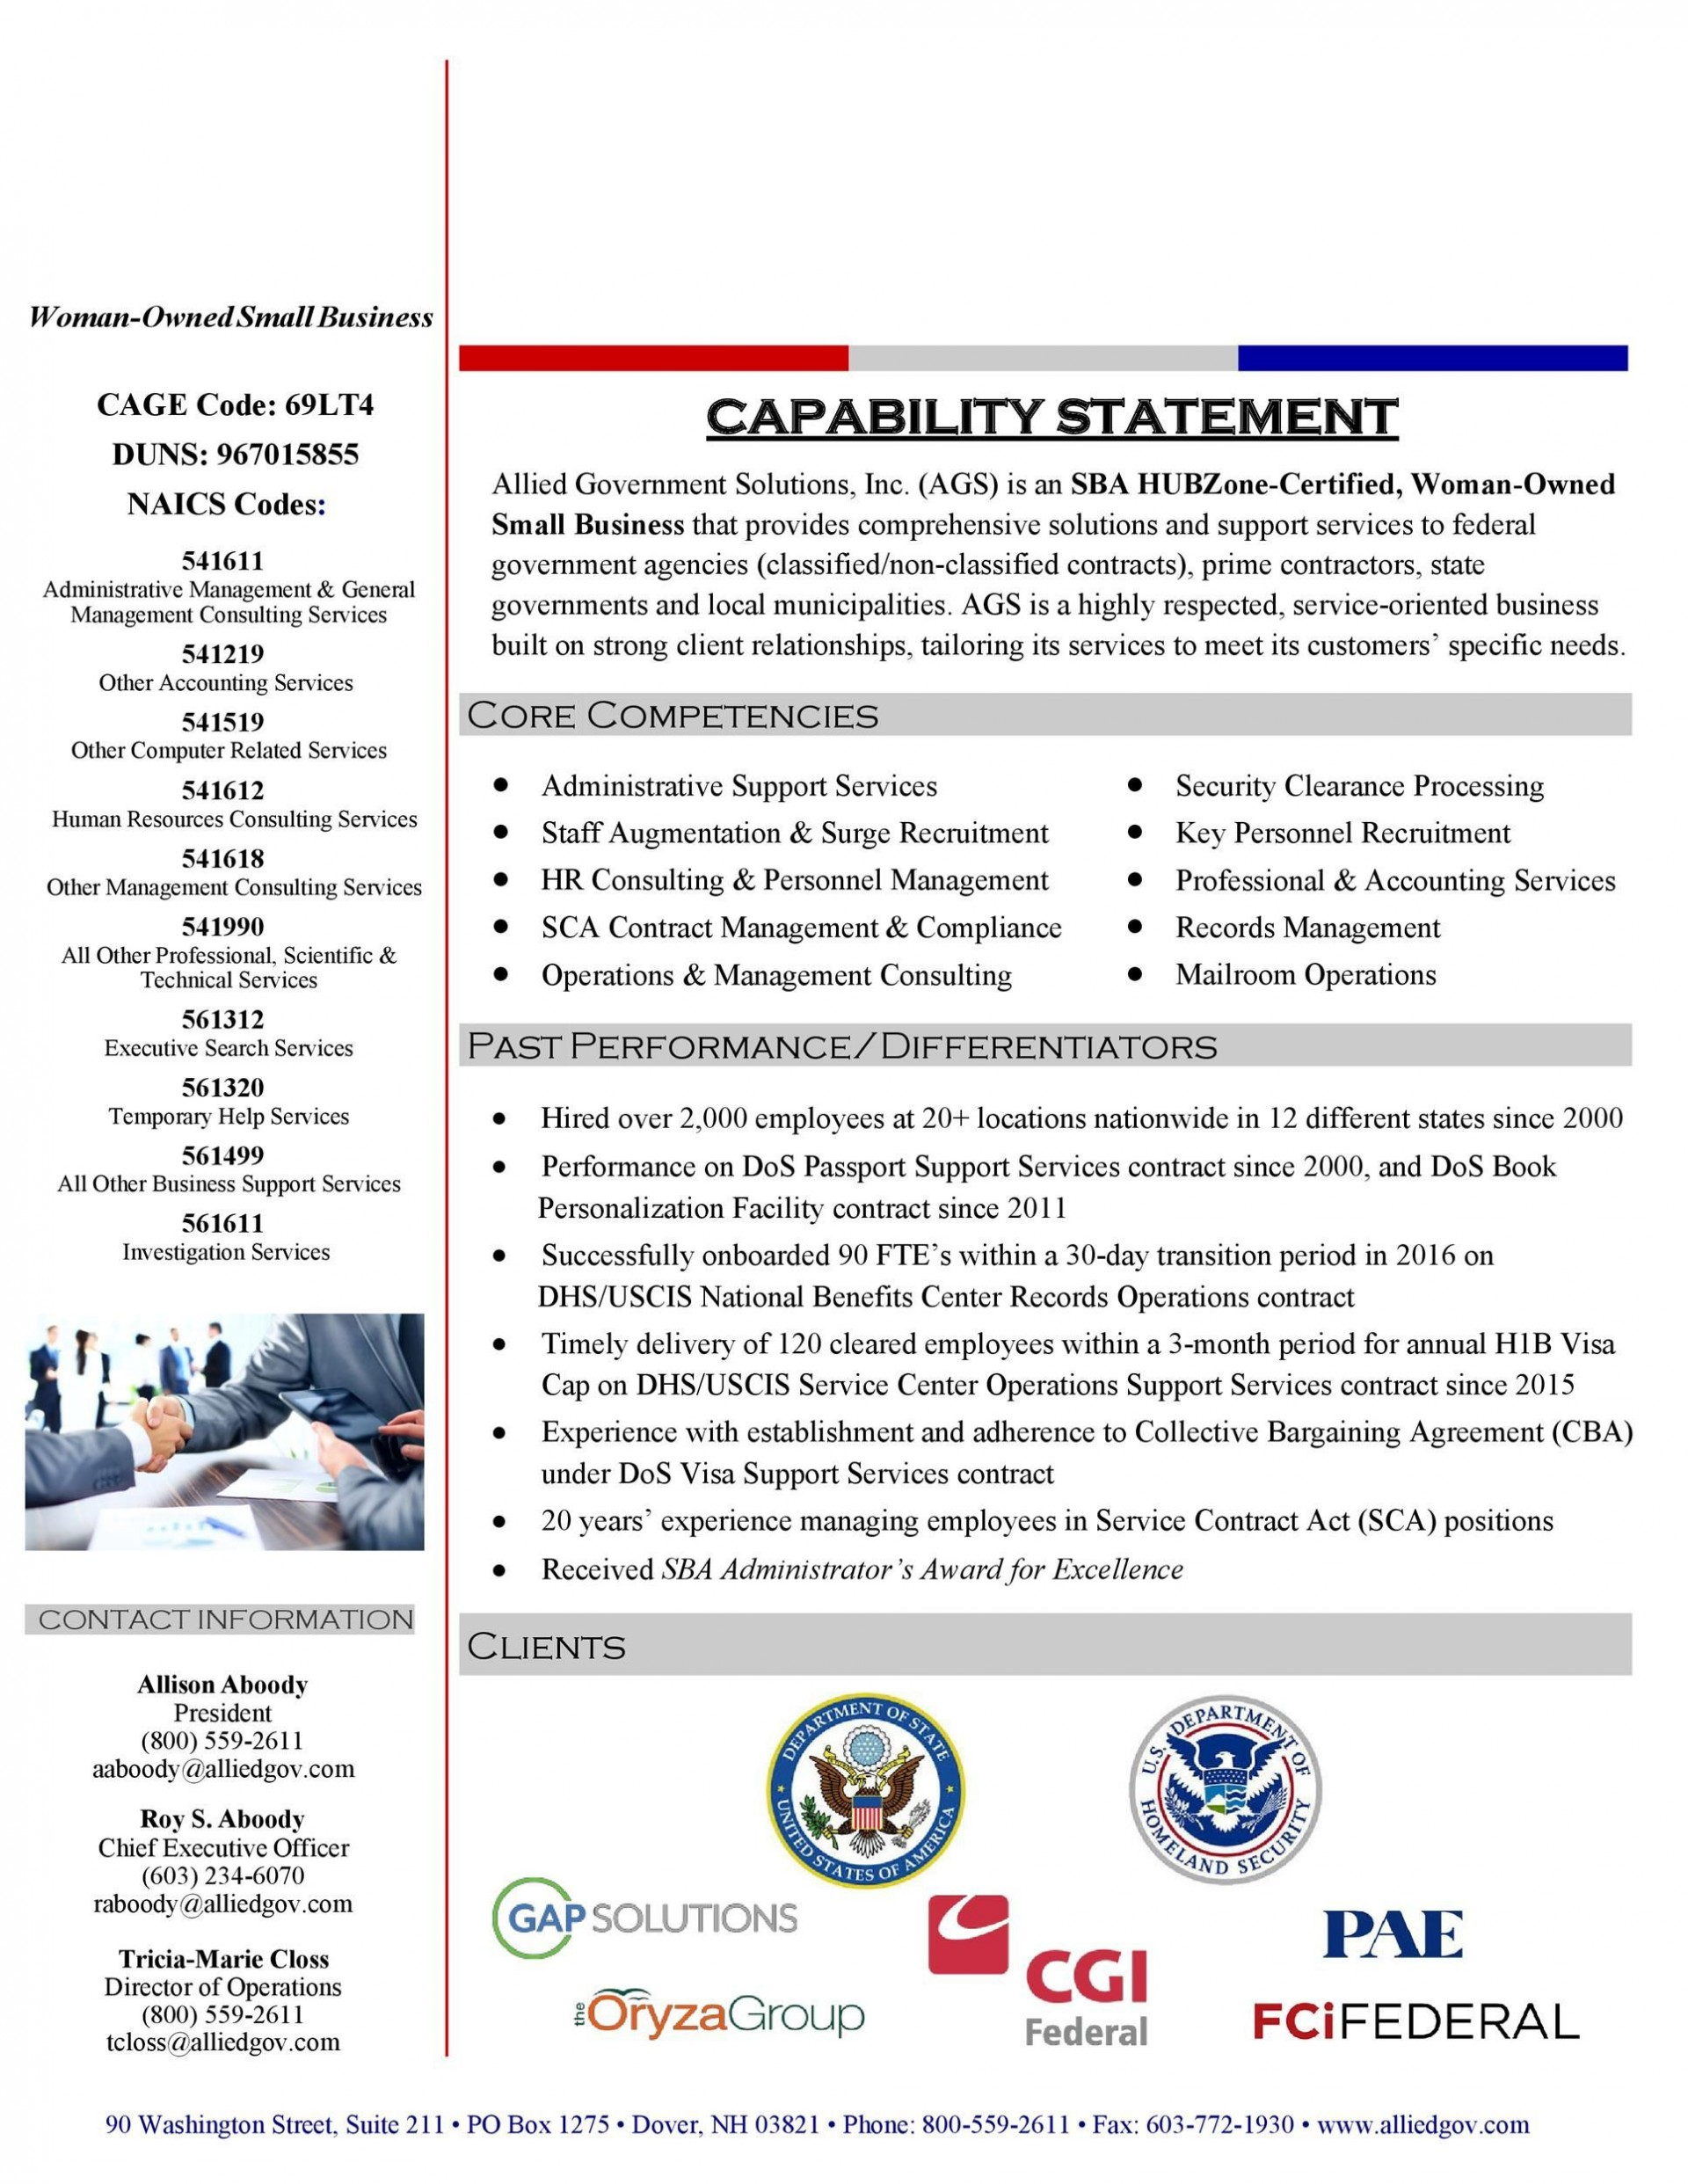 007 Remarkable Capability Statement Template Free Inspiration  Word Editable Design1920